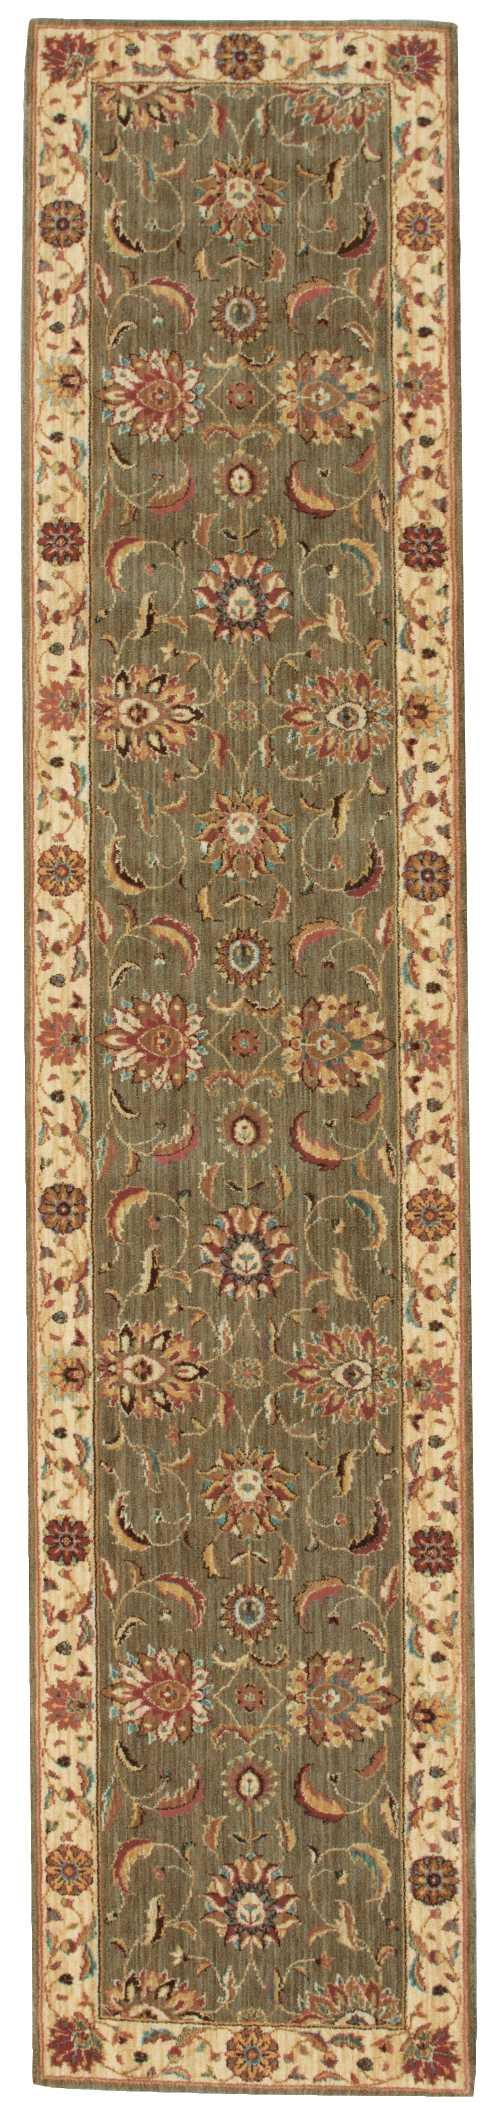 Nourison LIVING TREASURES LI04 GREEN Area Rug